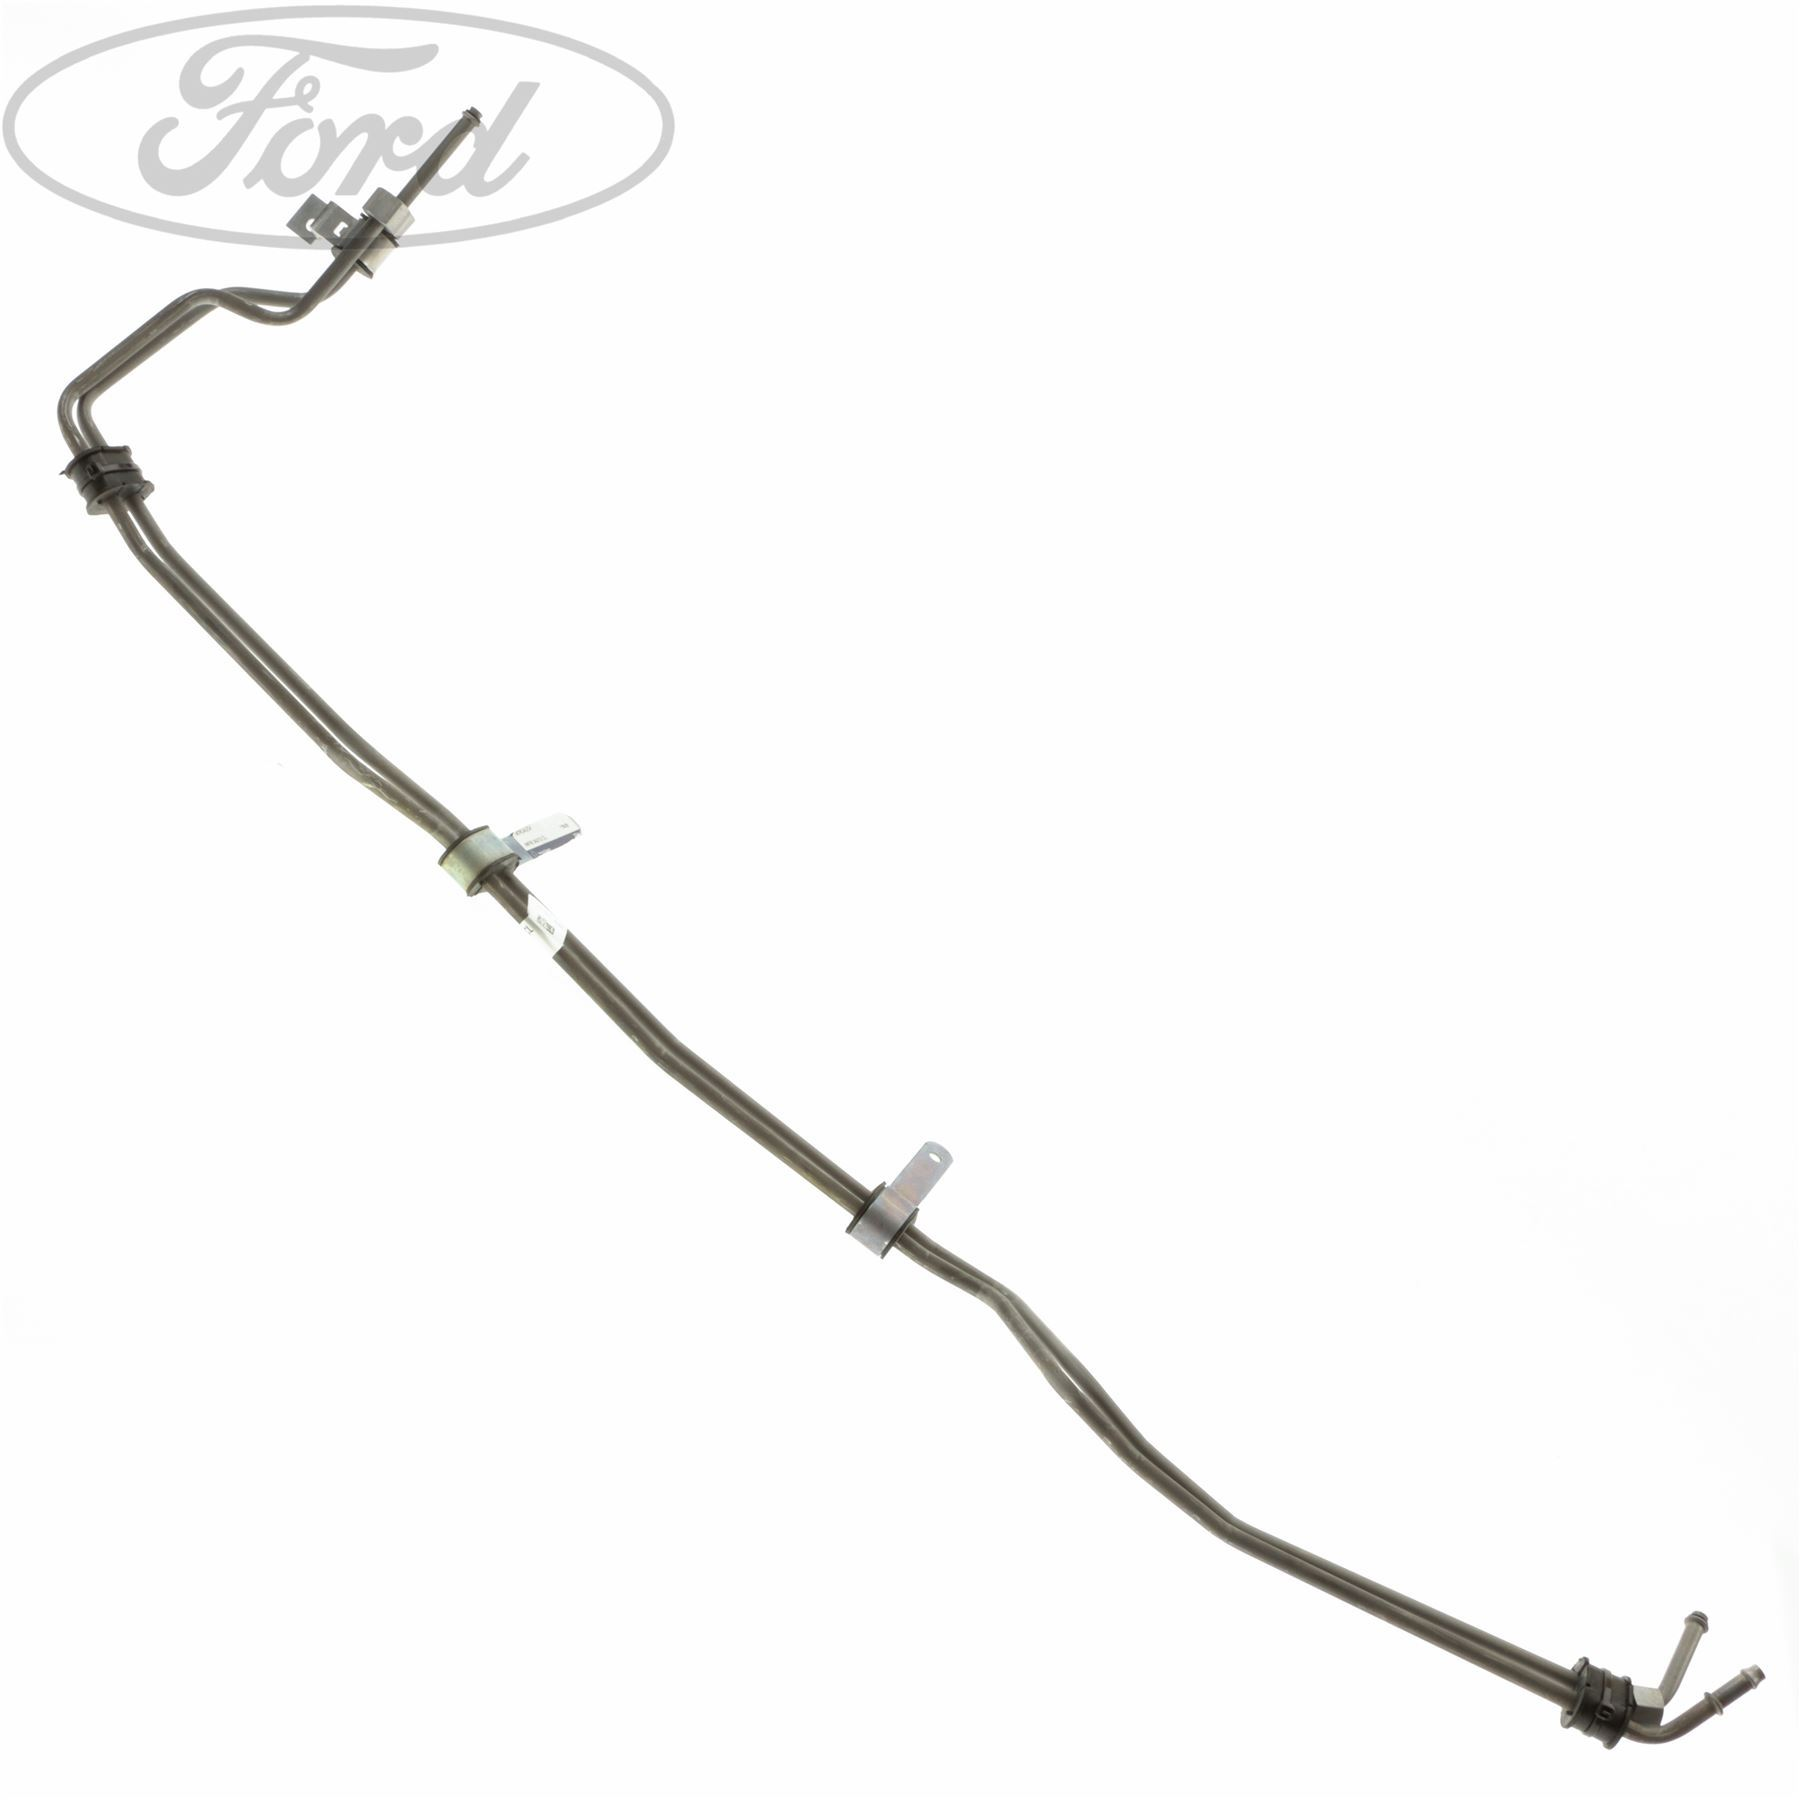 Genuine Ford Fiesta Mk5 Power Steering Power Steering